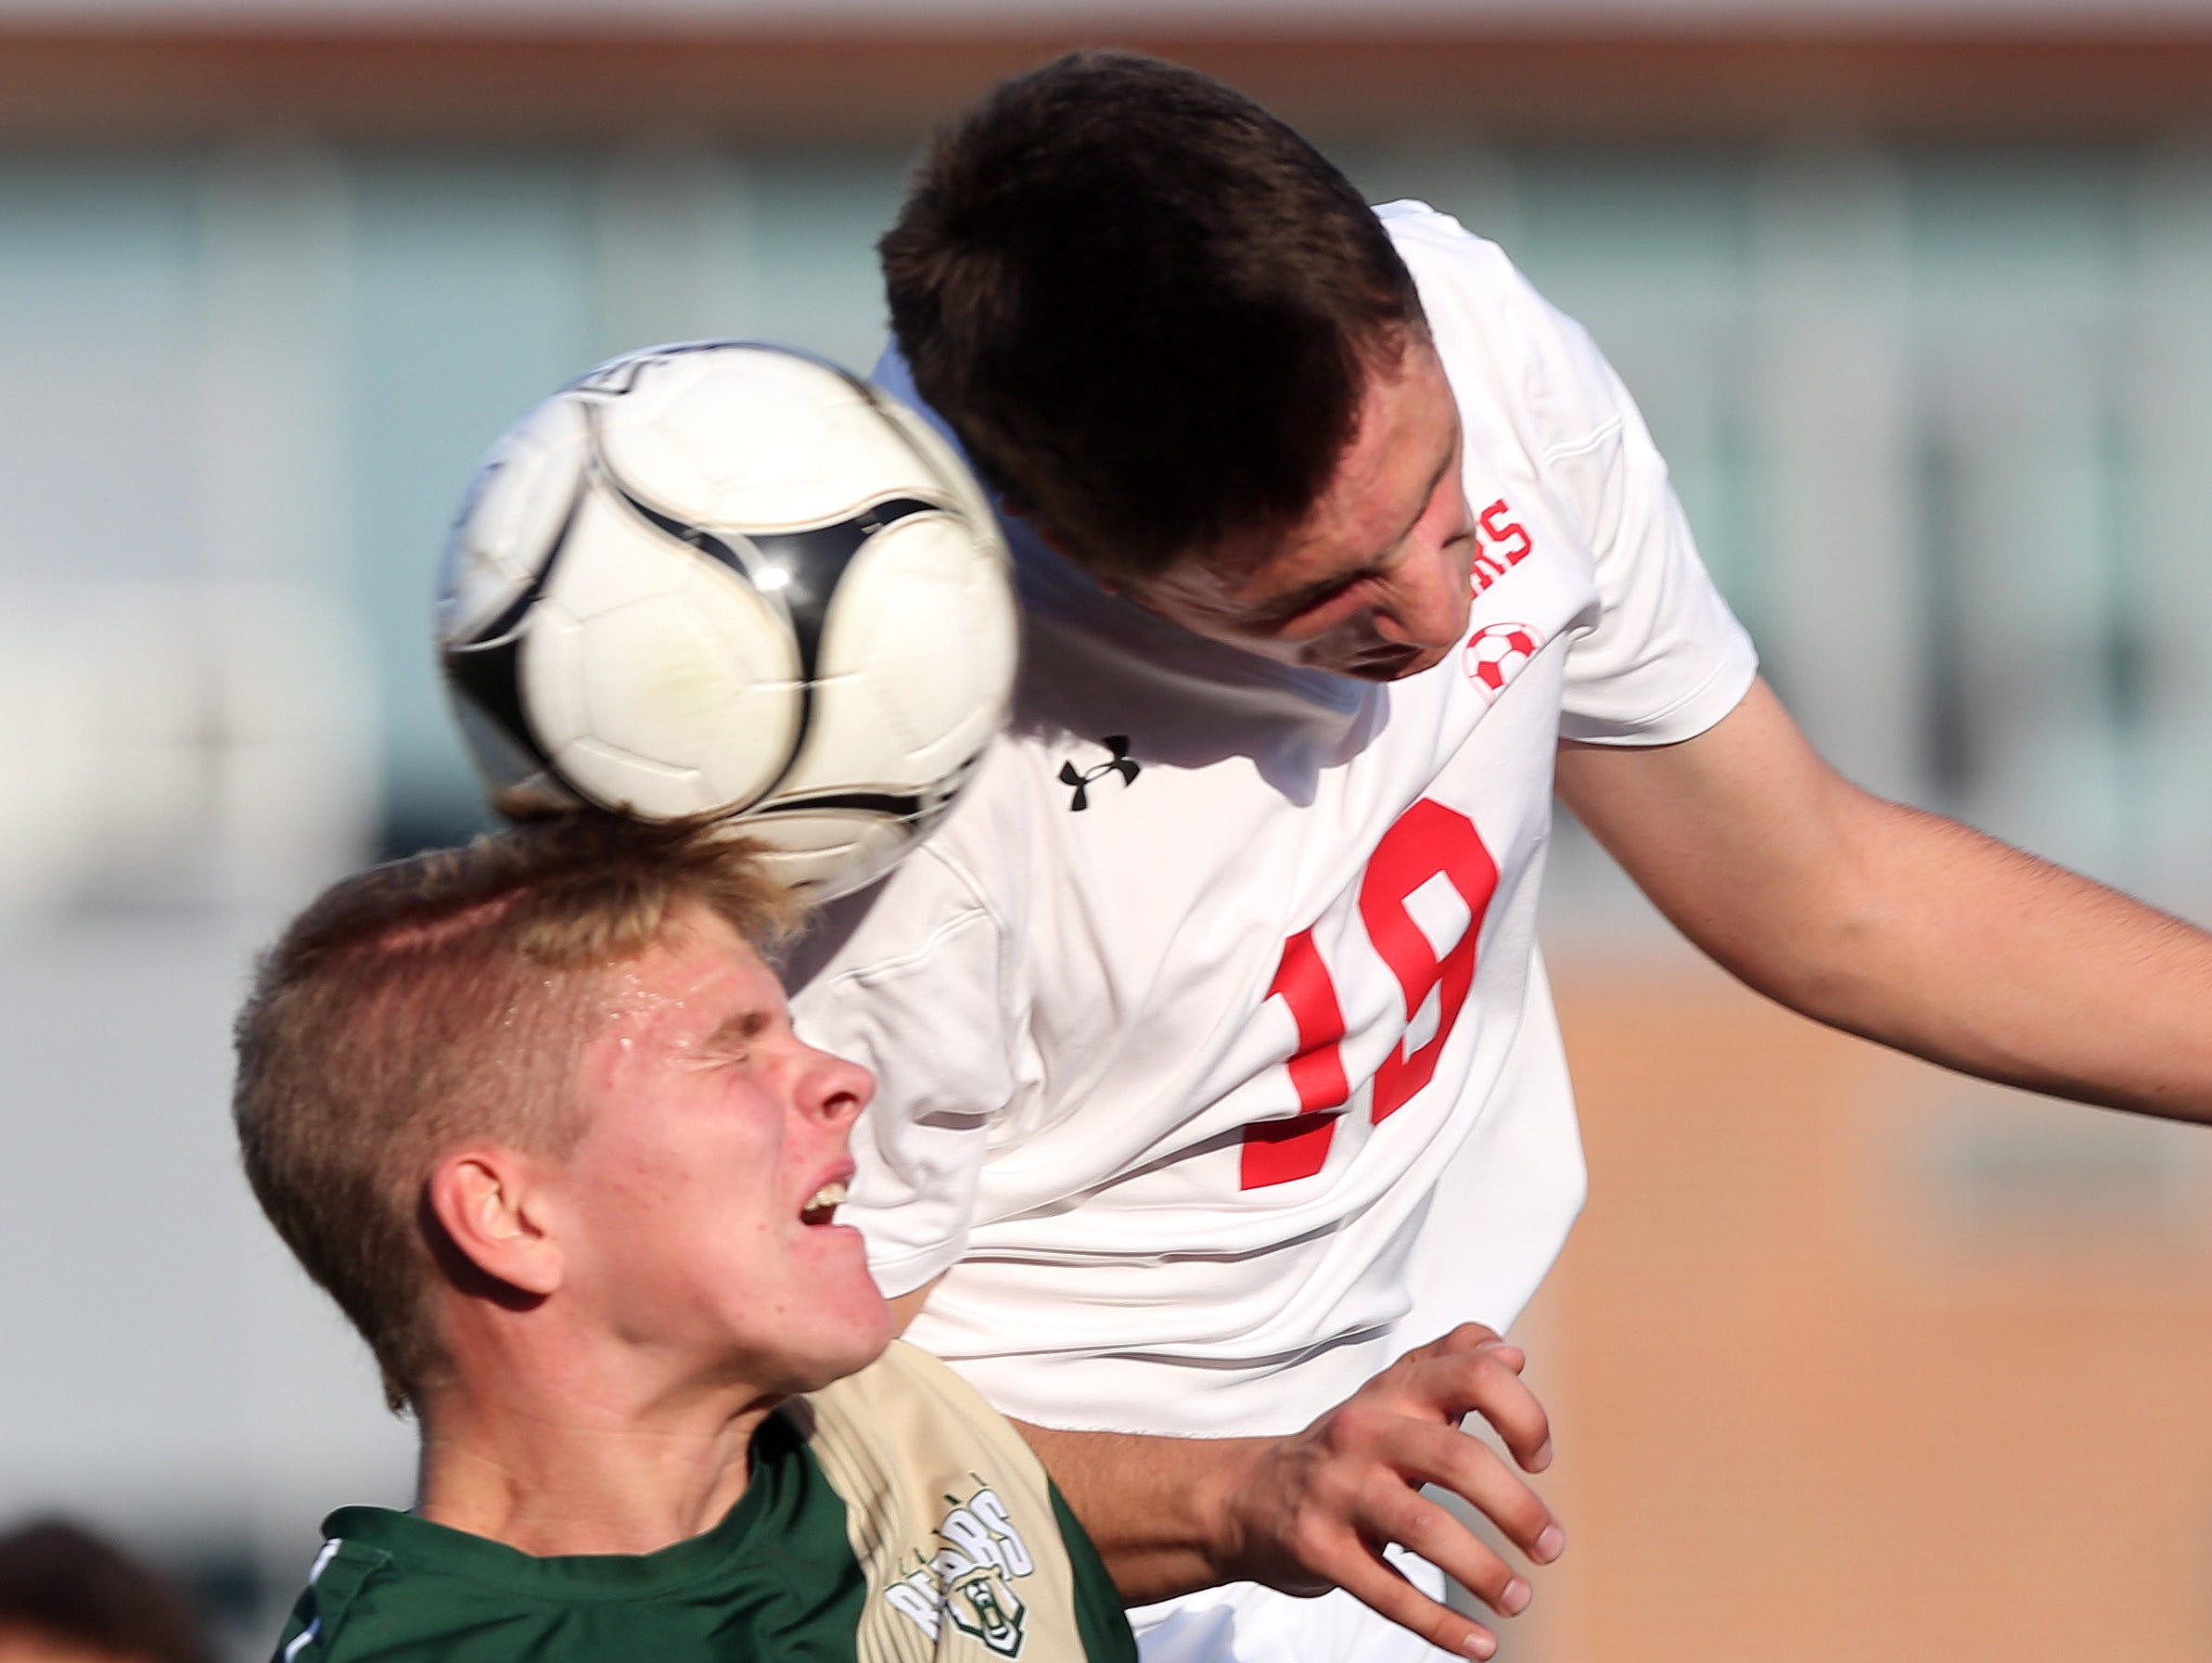 From left, Vestal's Nate Parsons (21) and Somers Max Grell (19) battle for ball control during the boys soccer regional semifinal at Lakeland High School in Shrub Oak Nov. 2, 2016. Somers won the game 3-0.